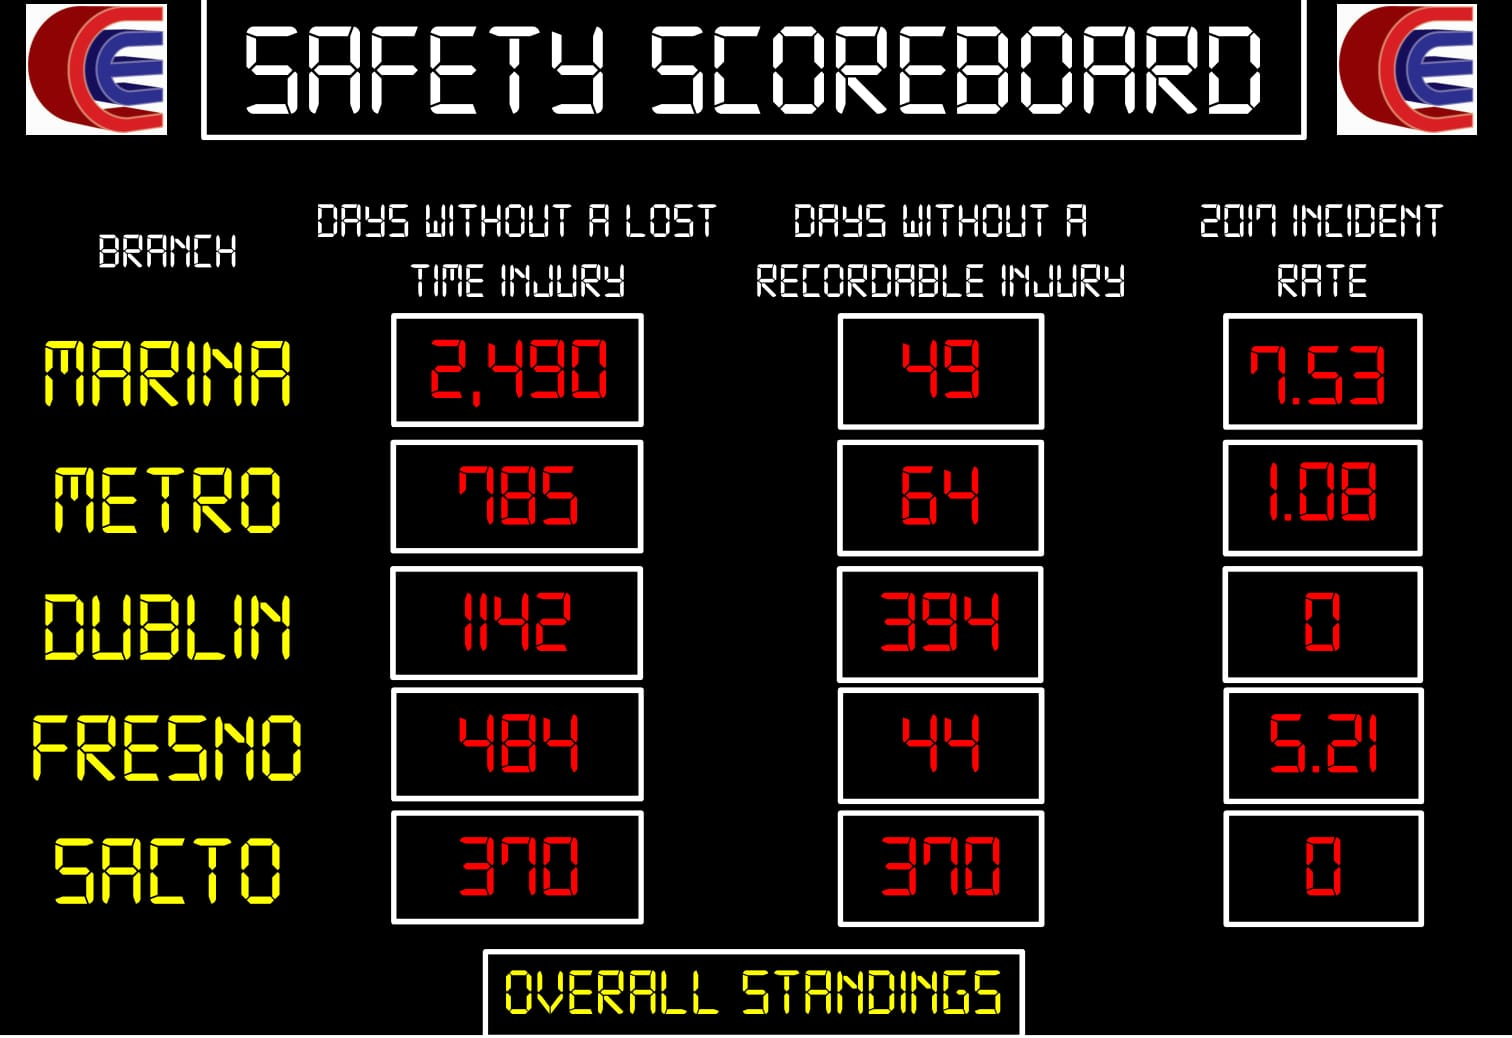 Safety Scoreboard-1